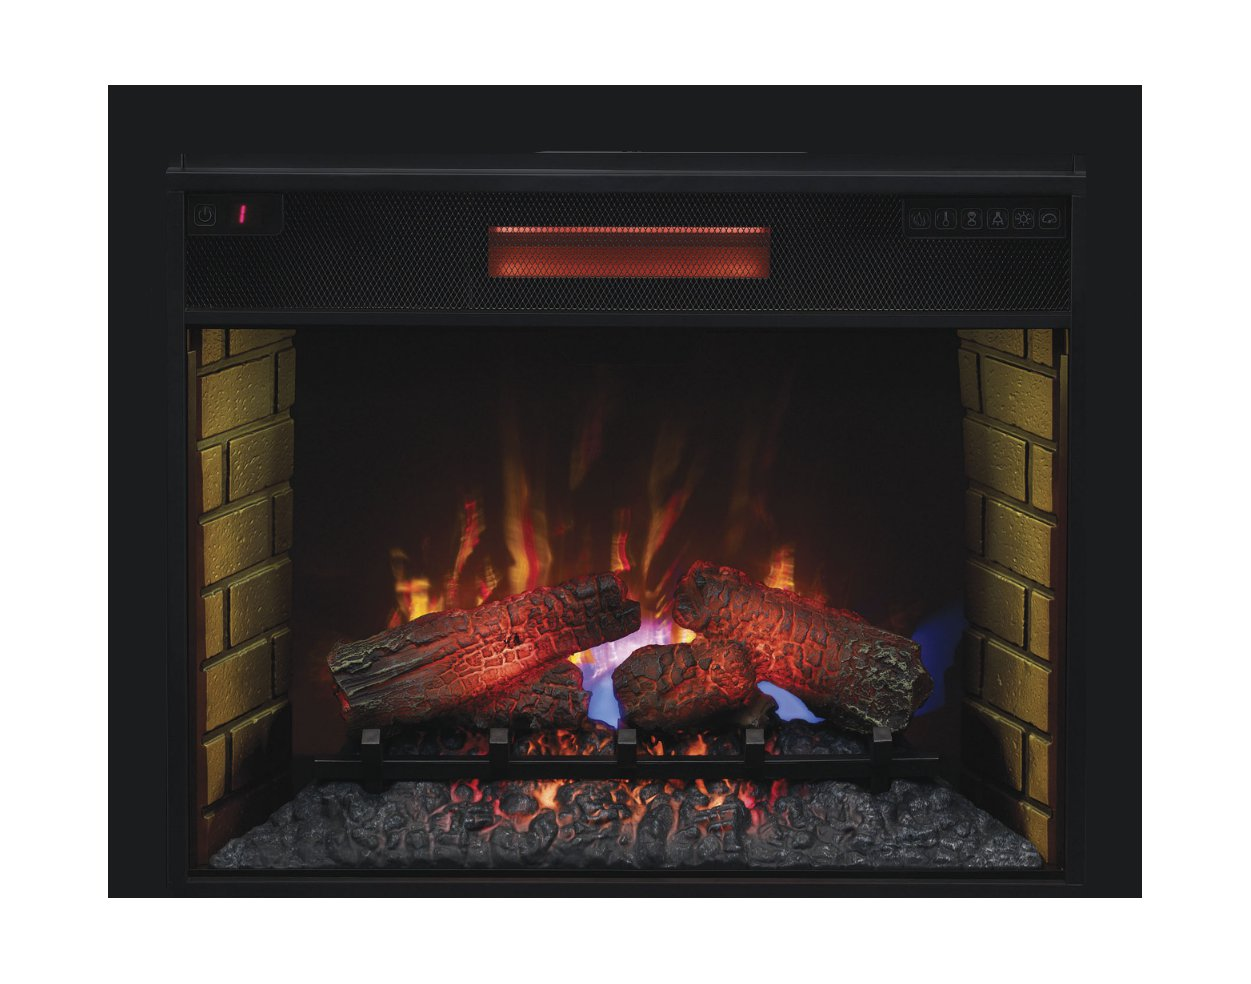 classic infrared fireplaces electric on custom fireplace category flame sale w trim product clearance insert with closeout